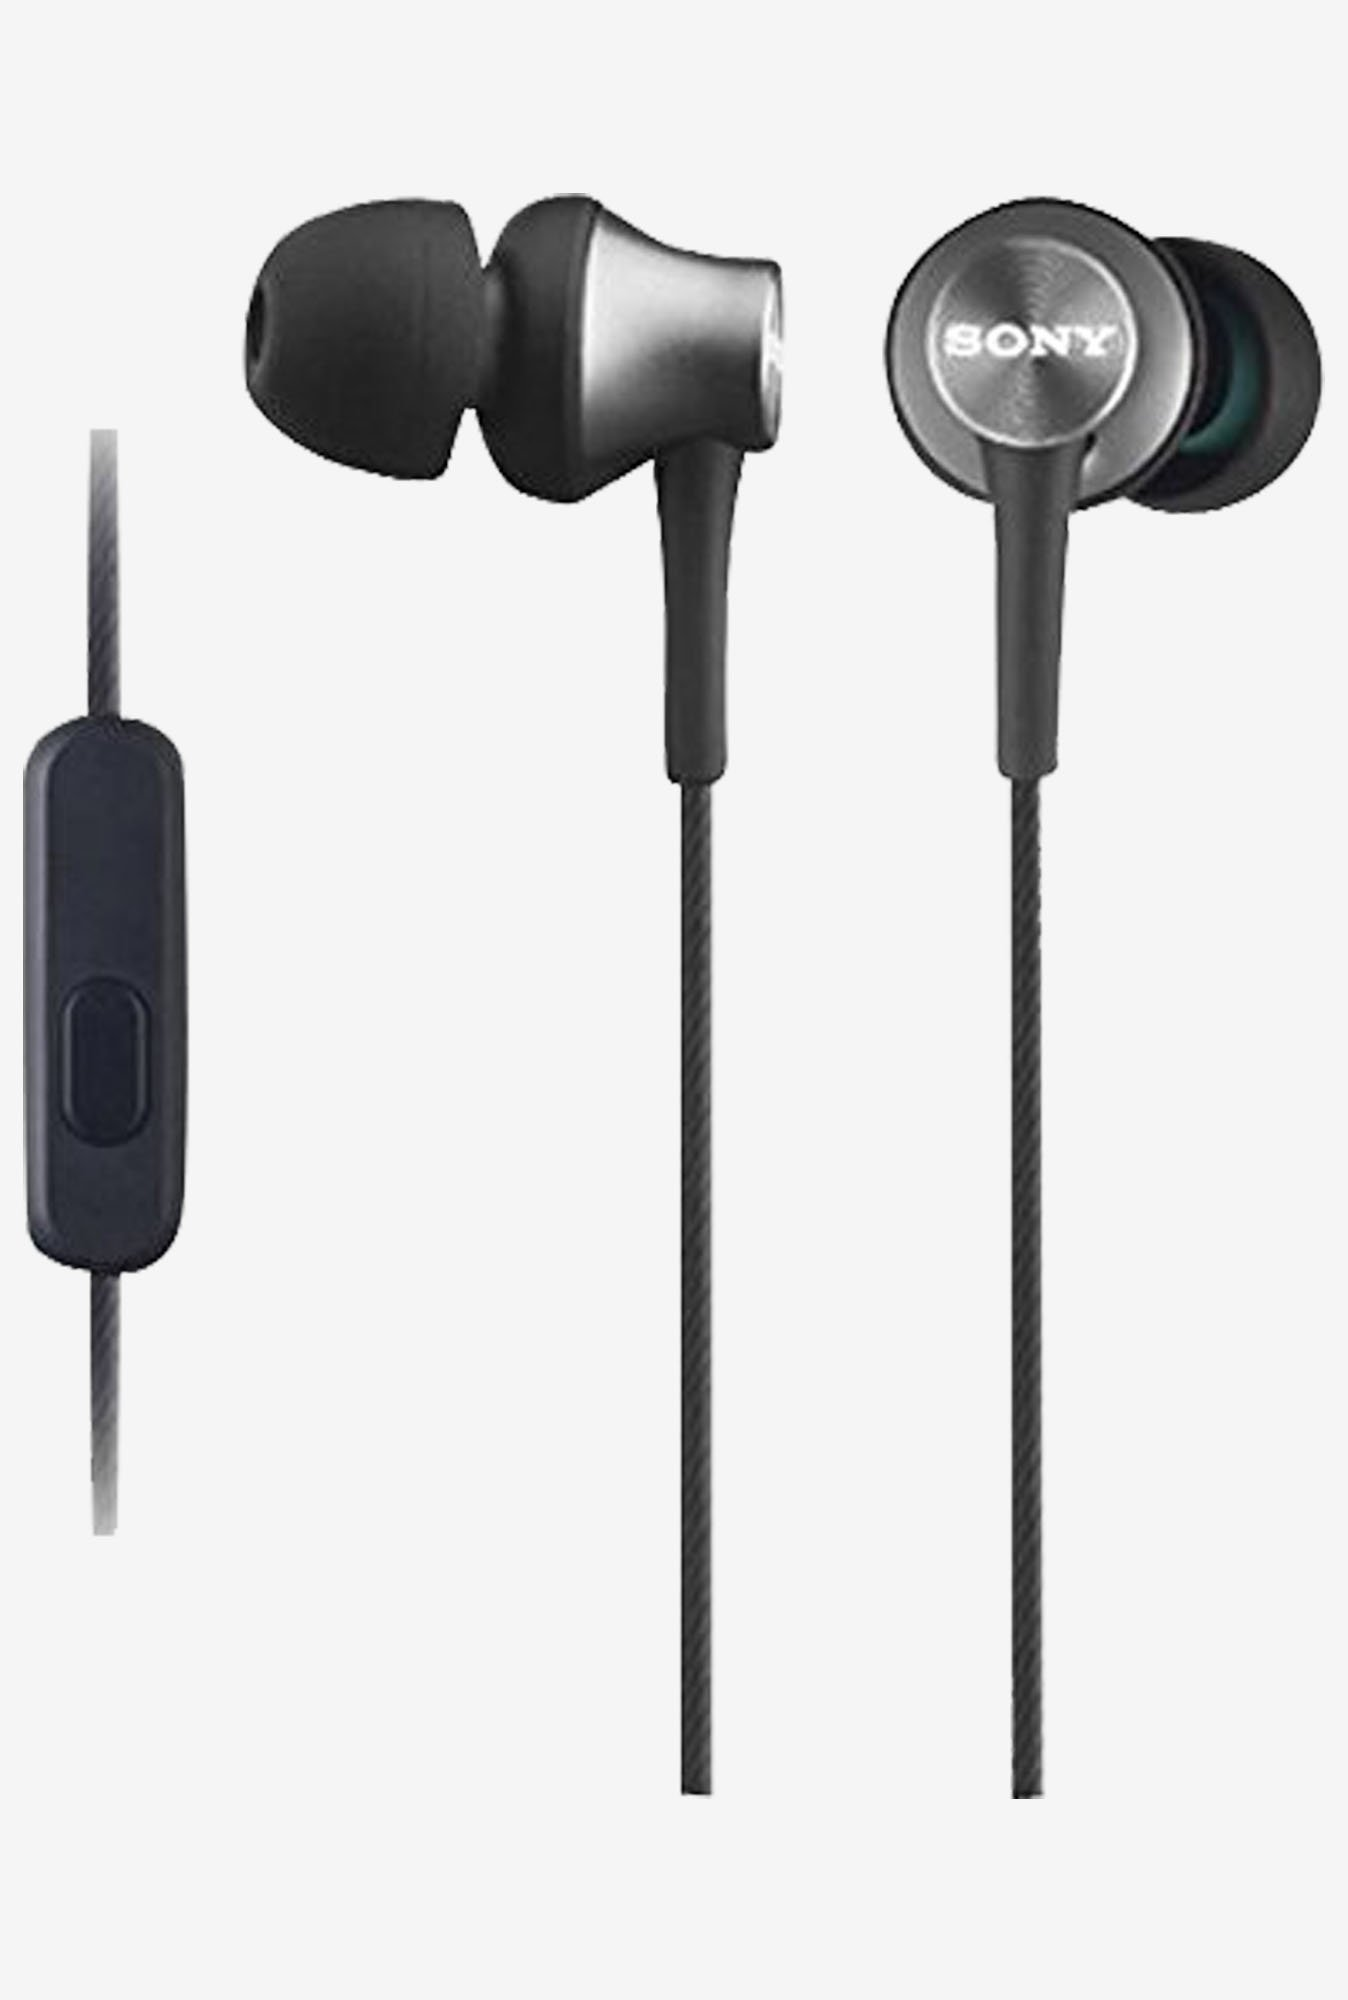 Sony MDR Ex450 H Sealed Receiver In the Ear (Gray)